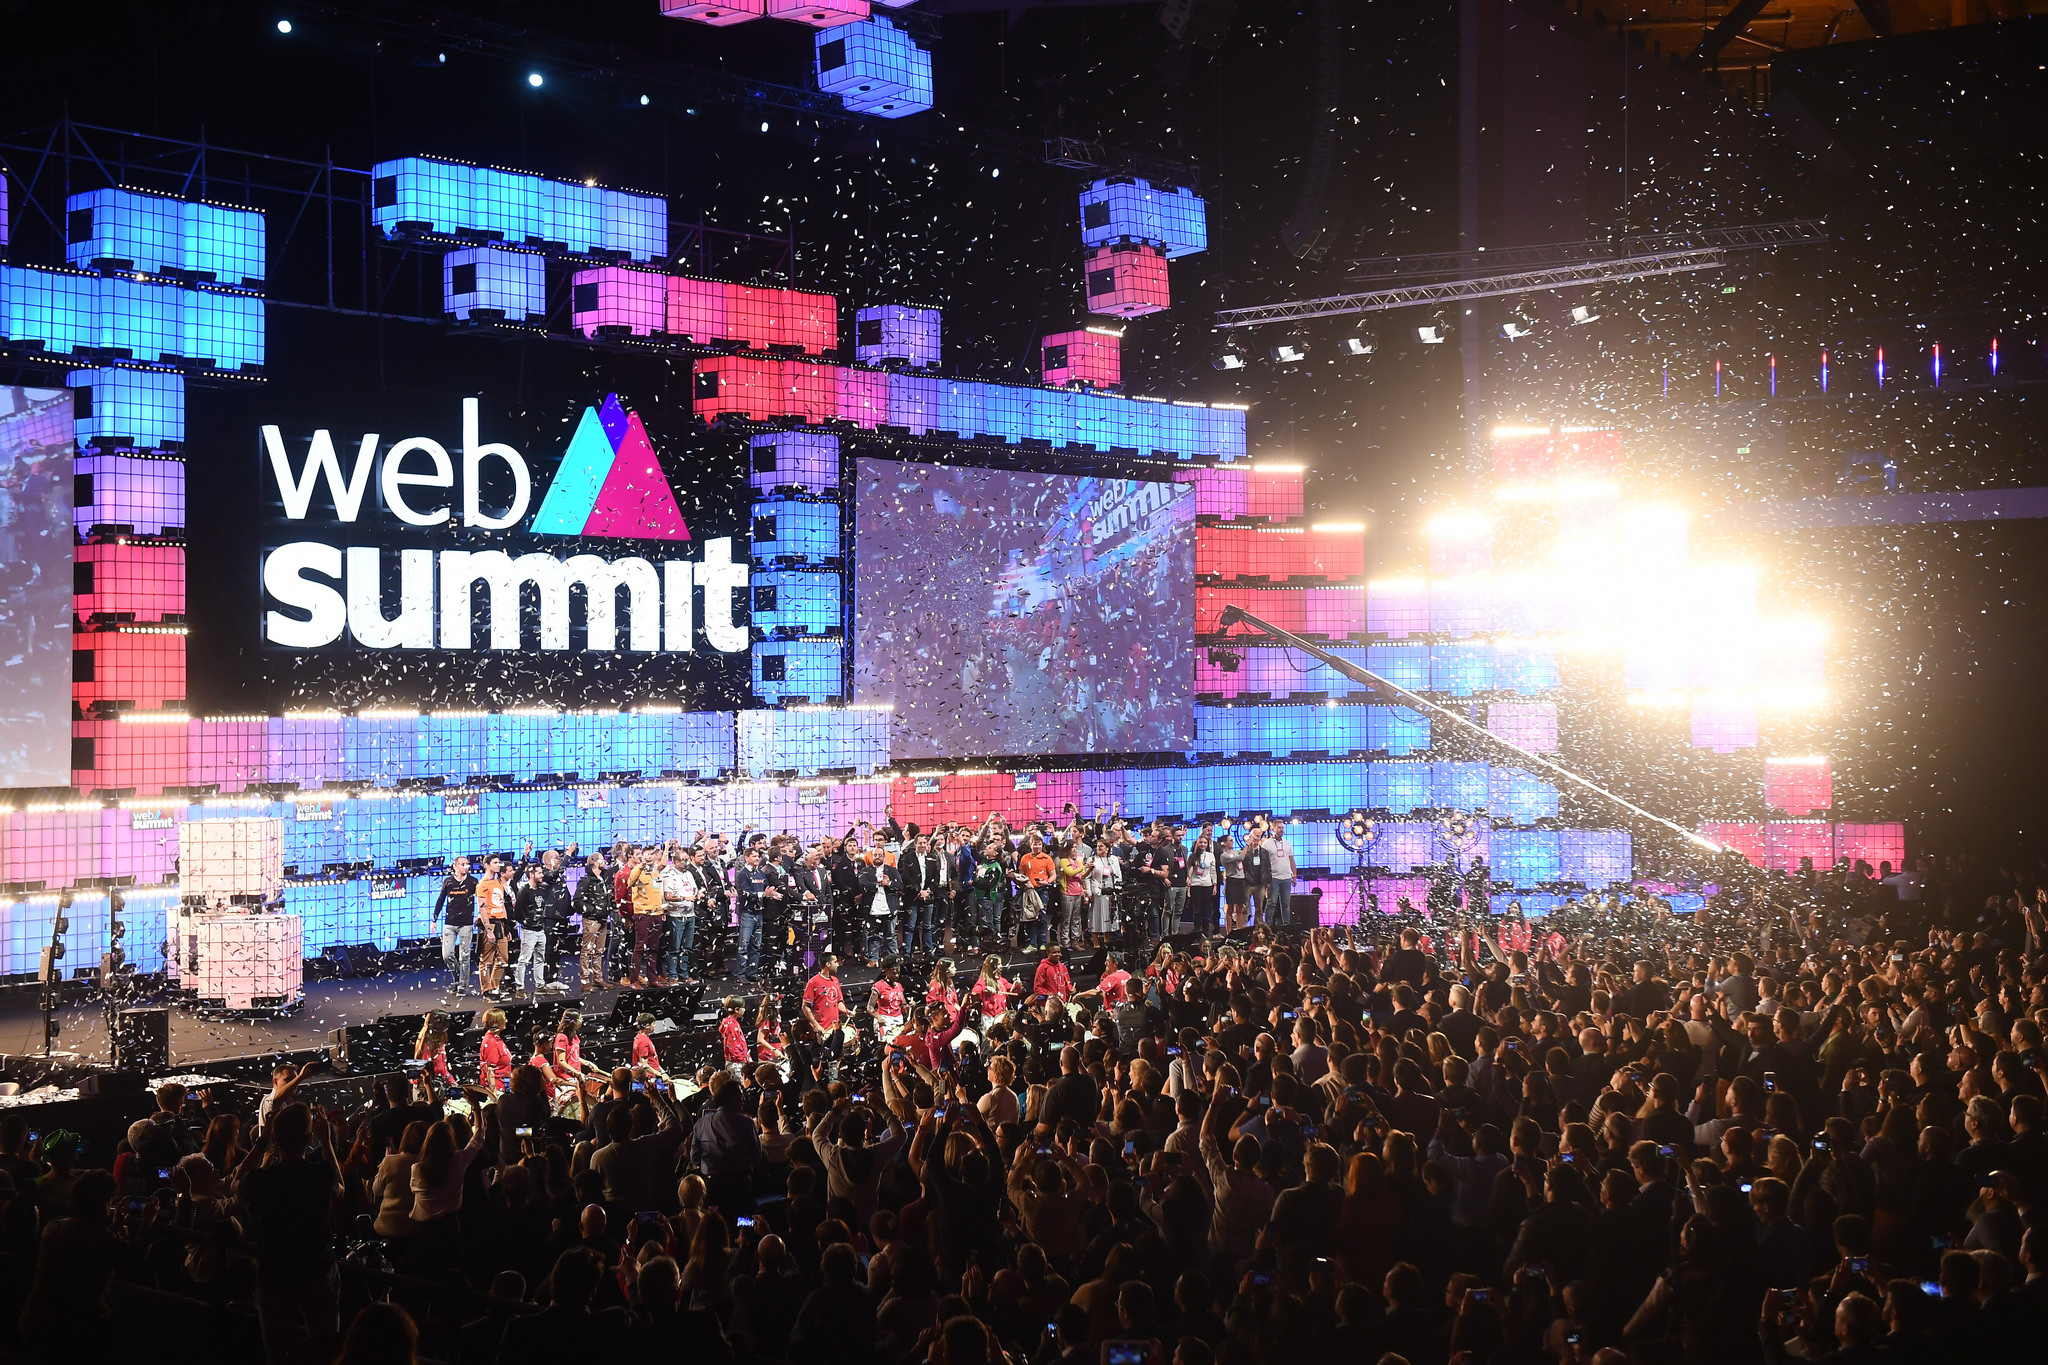 Web Summit, November 2018 - In November 2018, I returned to Lisbon to attend Web Summit for the second time. Over two days, I hosted three panels on fashion, commerce and the future of marketing.You can watch footage of the panels below.